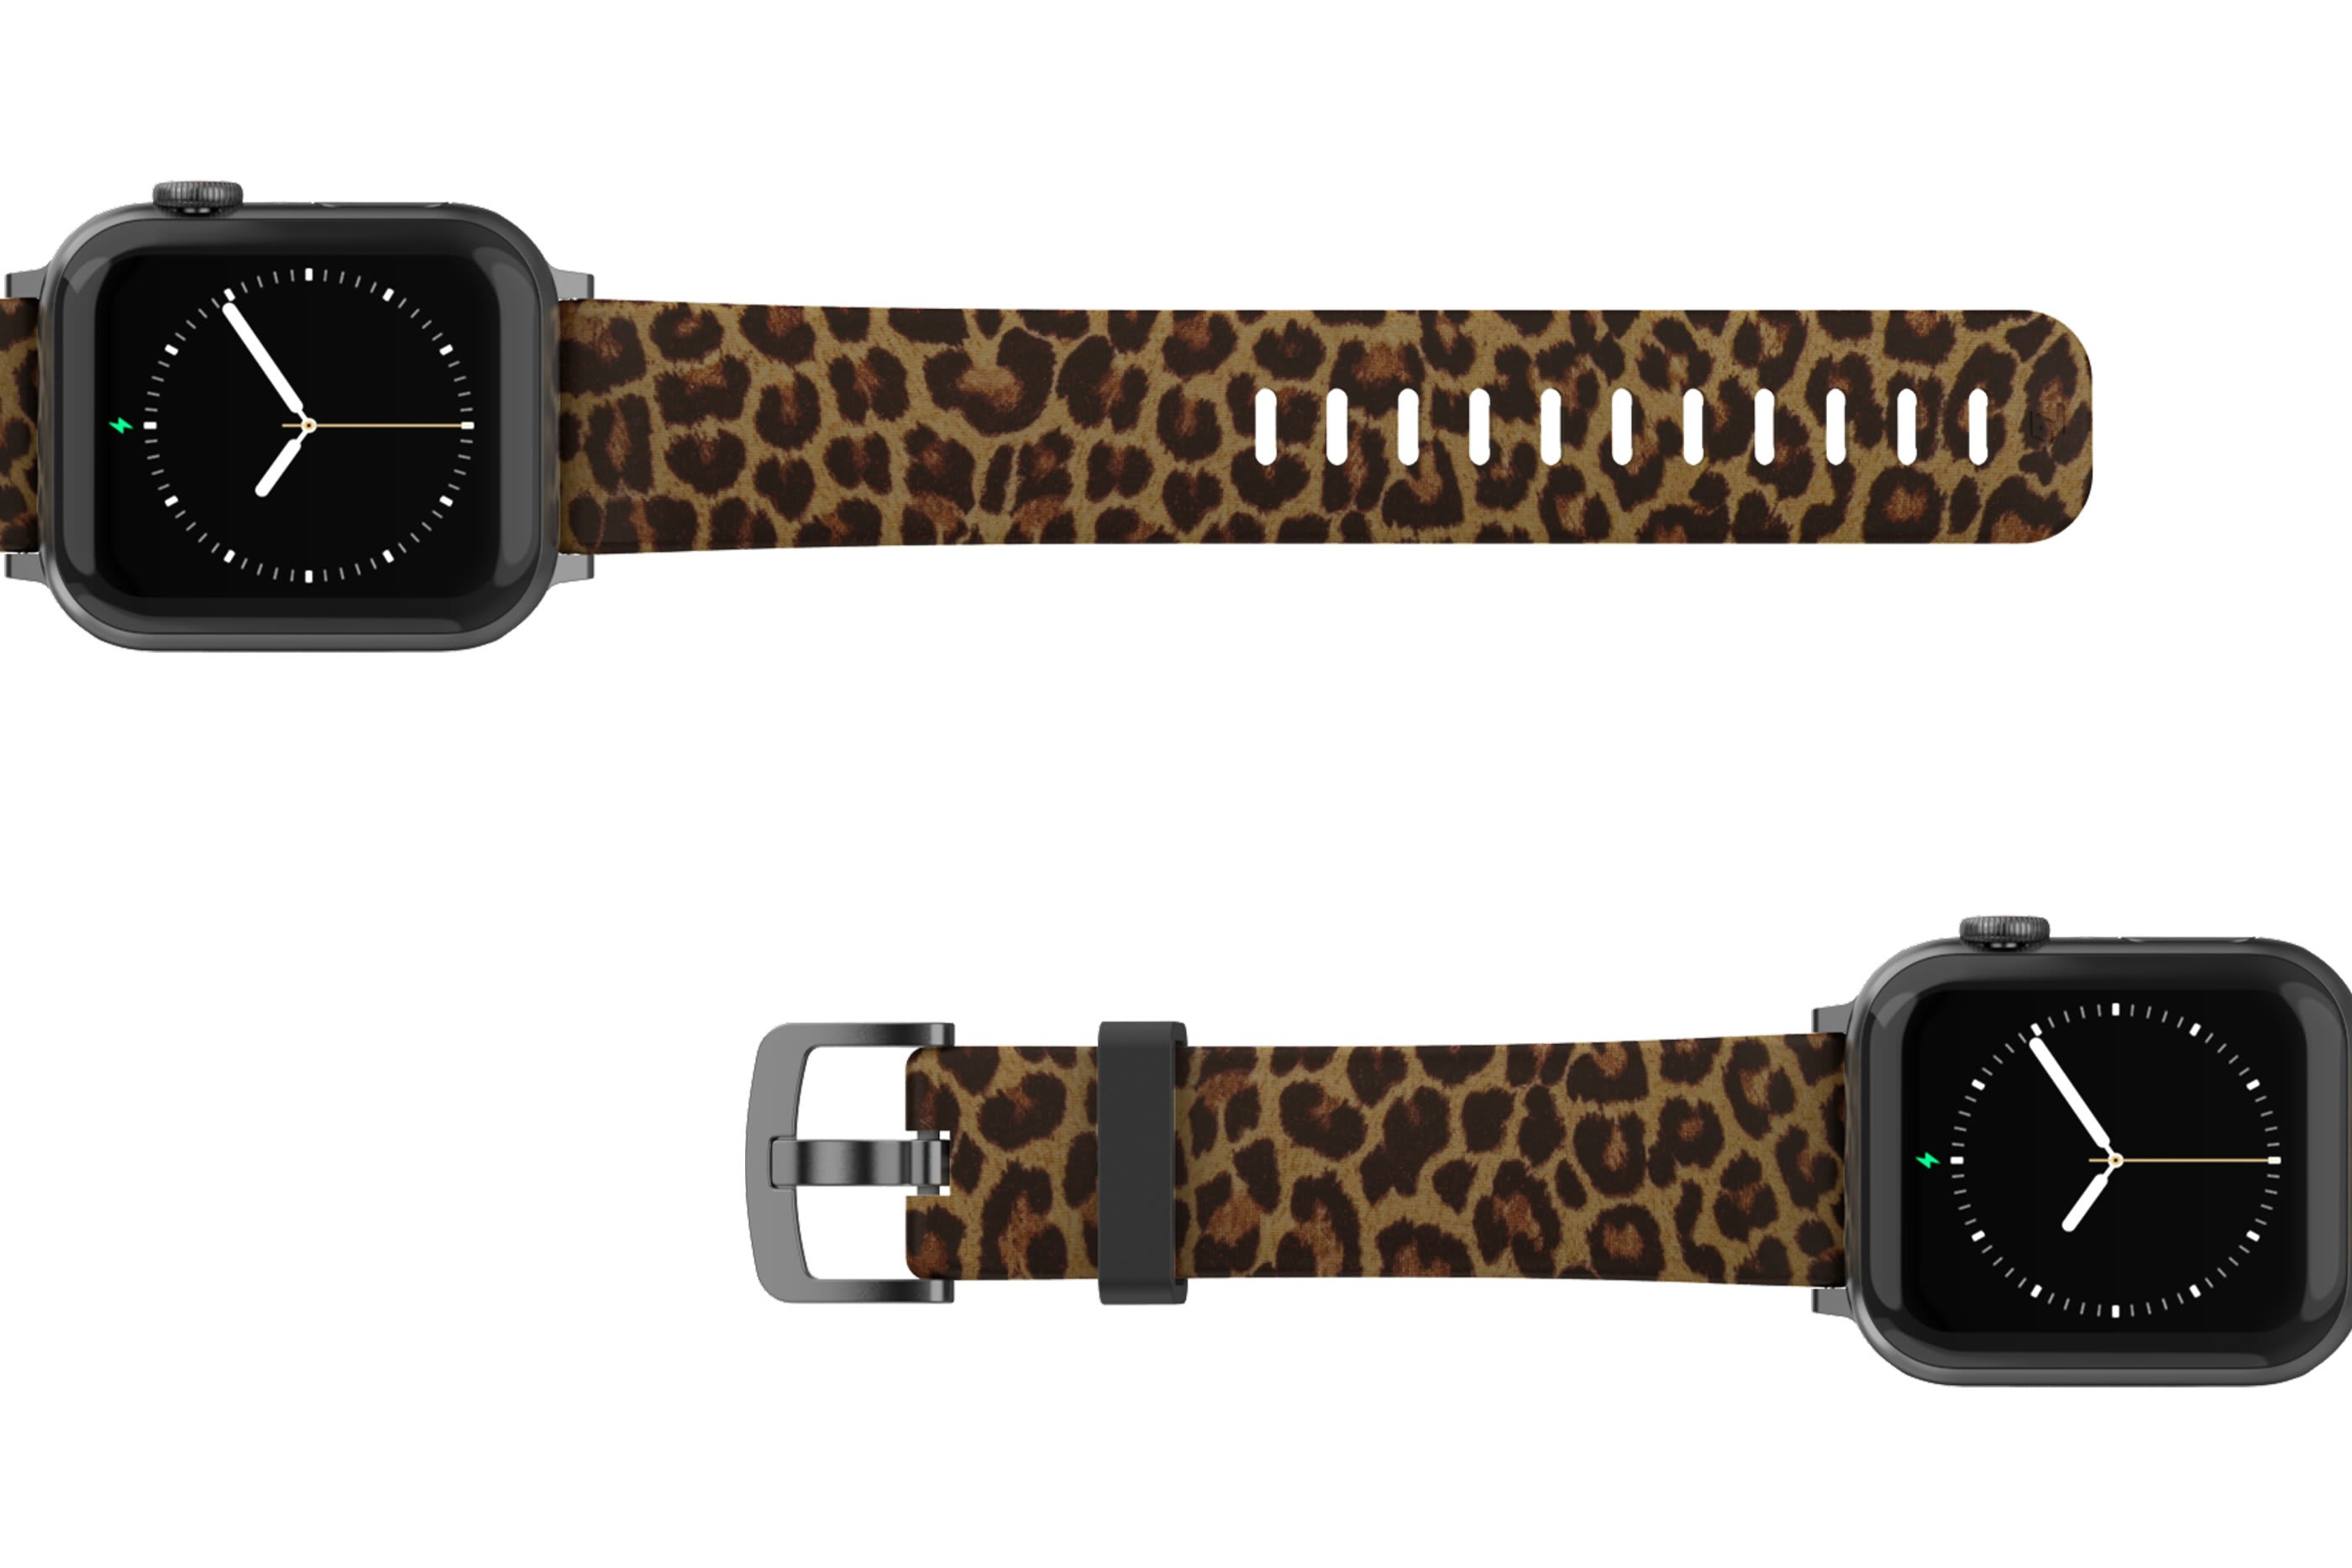 Leopard Apple Watch Band with gray hardware viewed top down